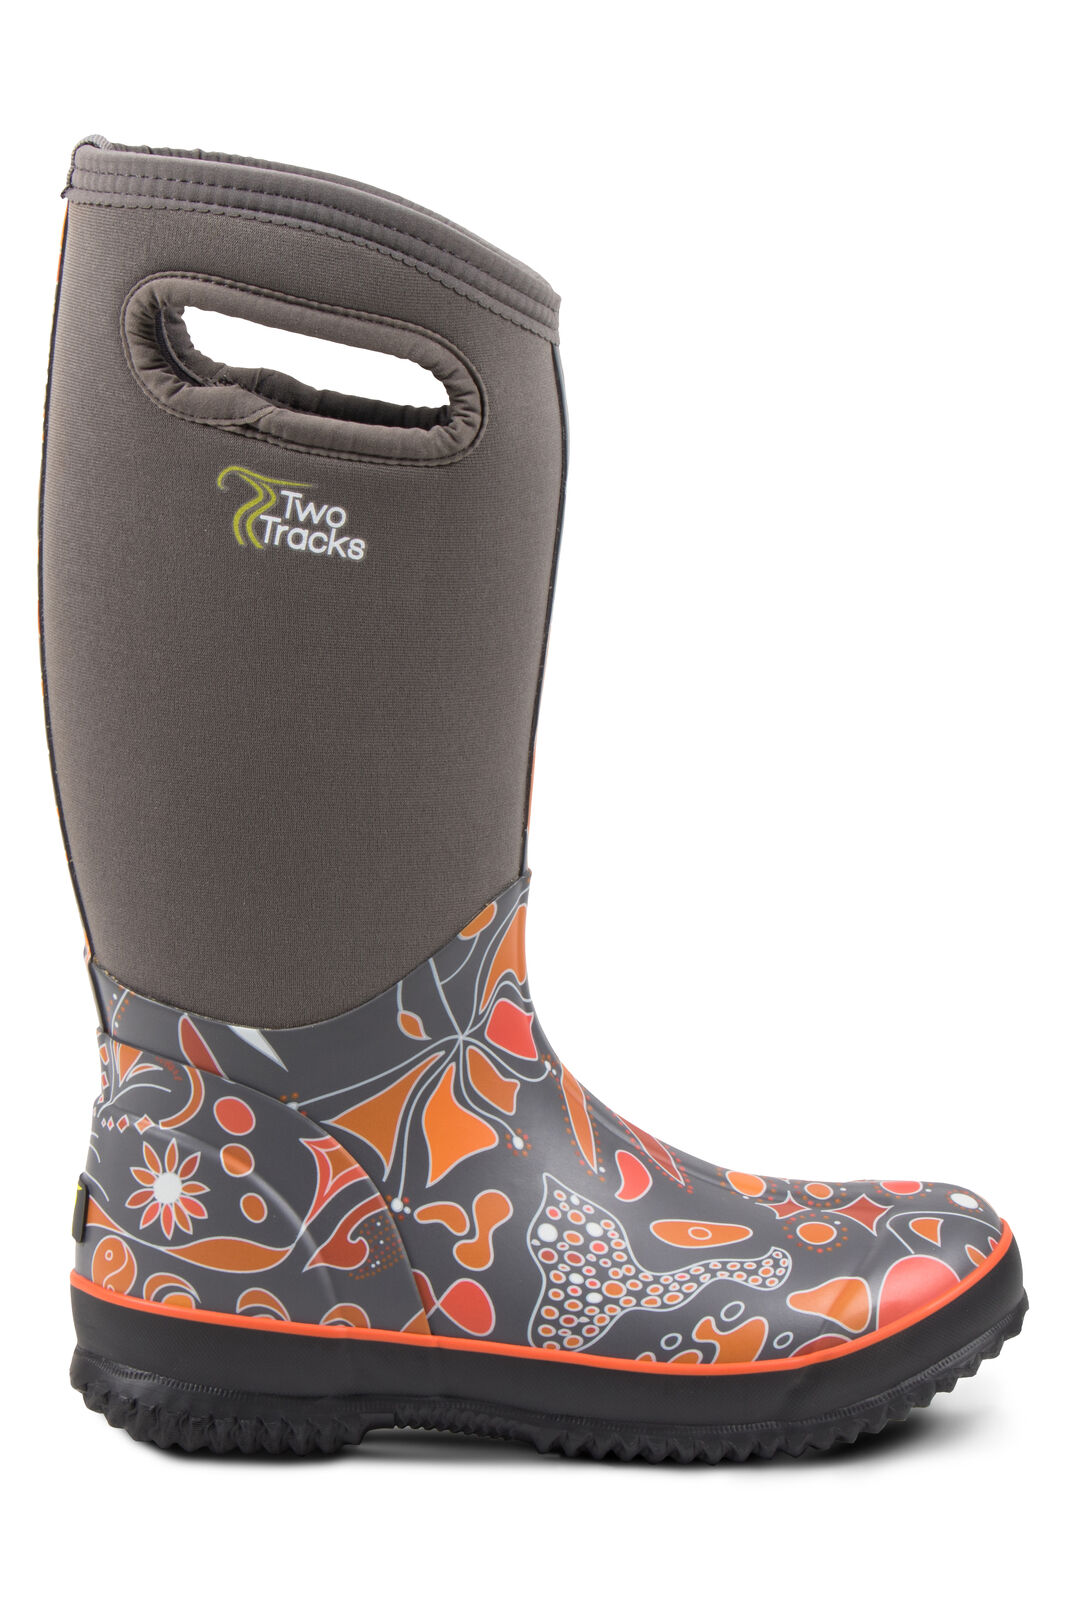 TwoTracks Neoprenstiefel purple orange Hoch Outdoorstiefel Gummistiefel